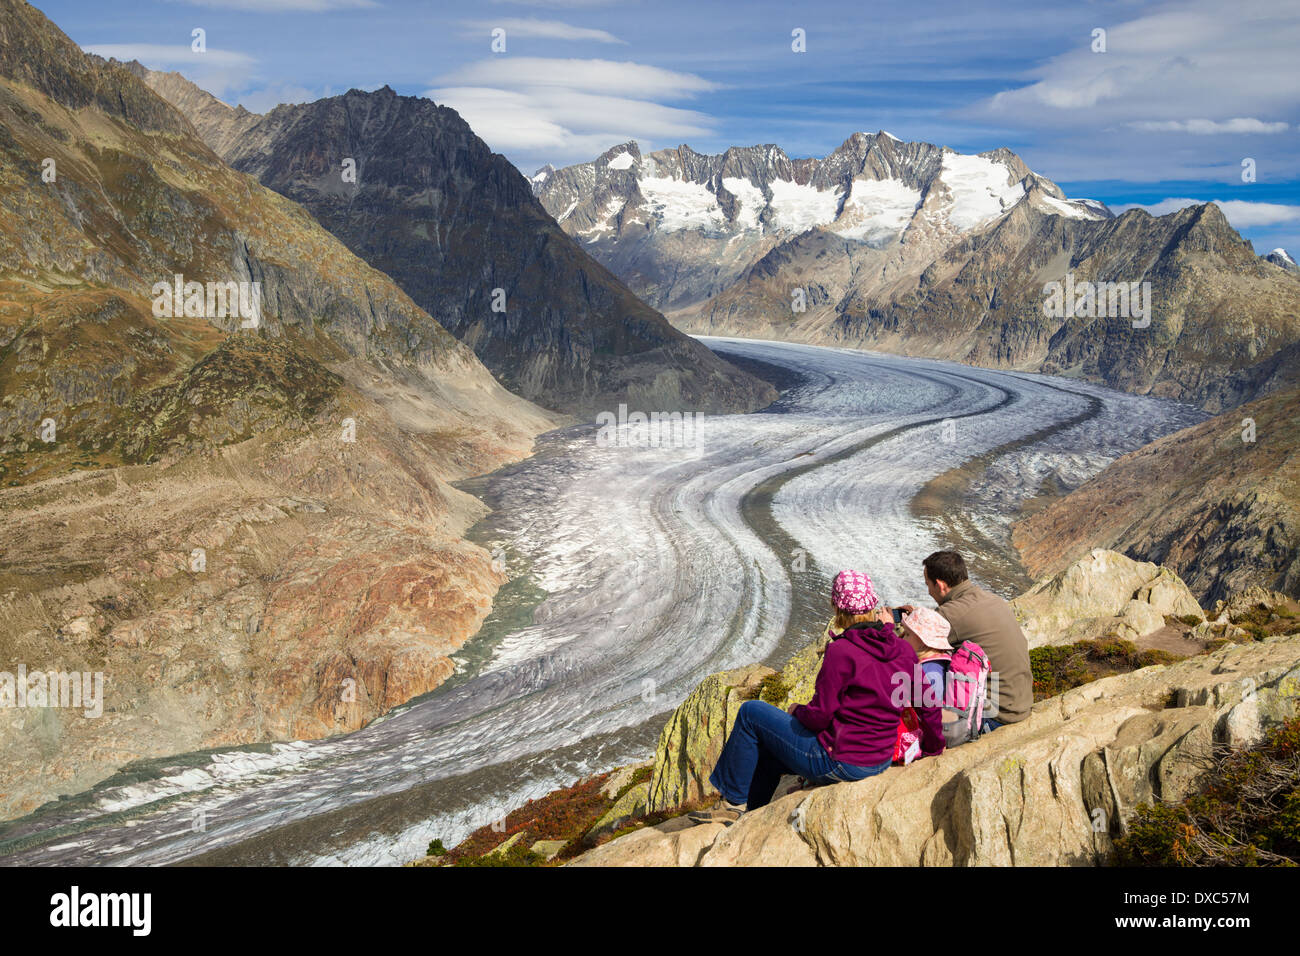 Aletsch Glacier, Valais, Swiss Alps, Switzerland, Europe - Stock Image